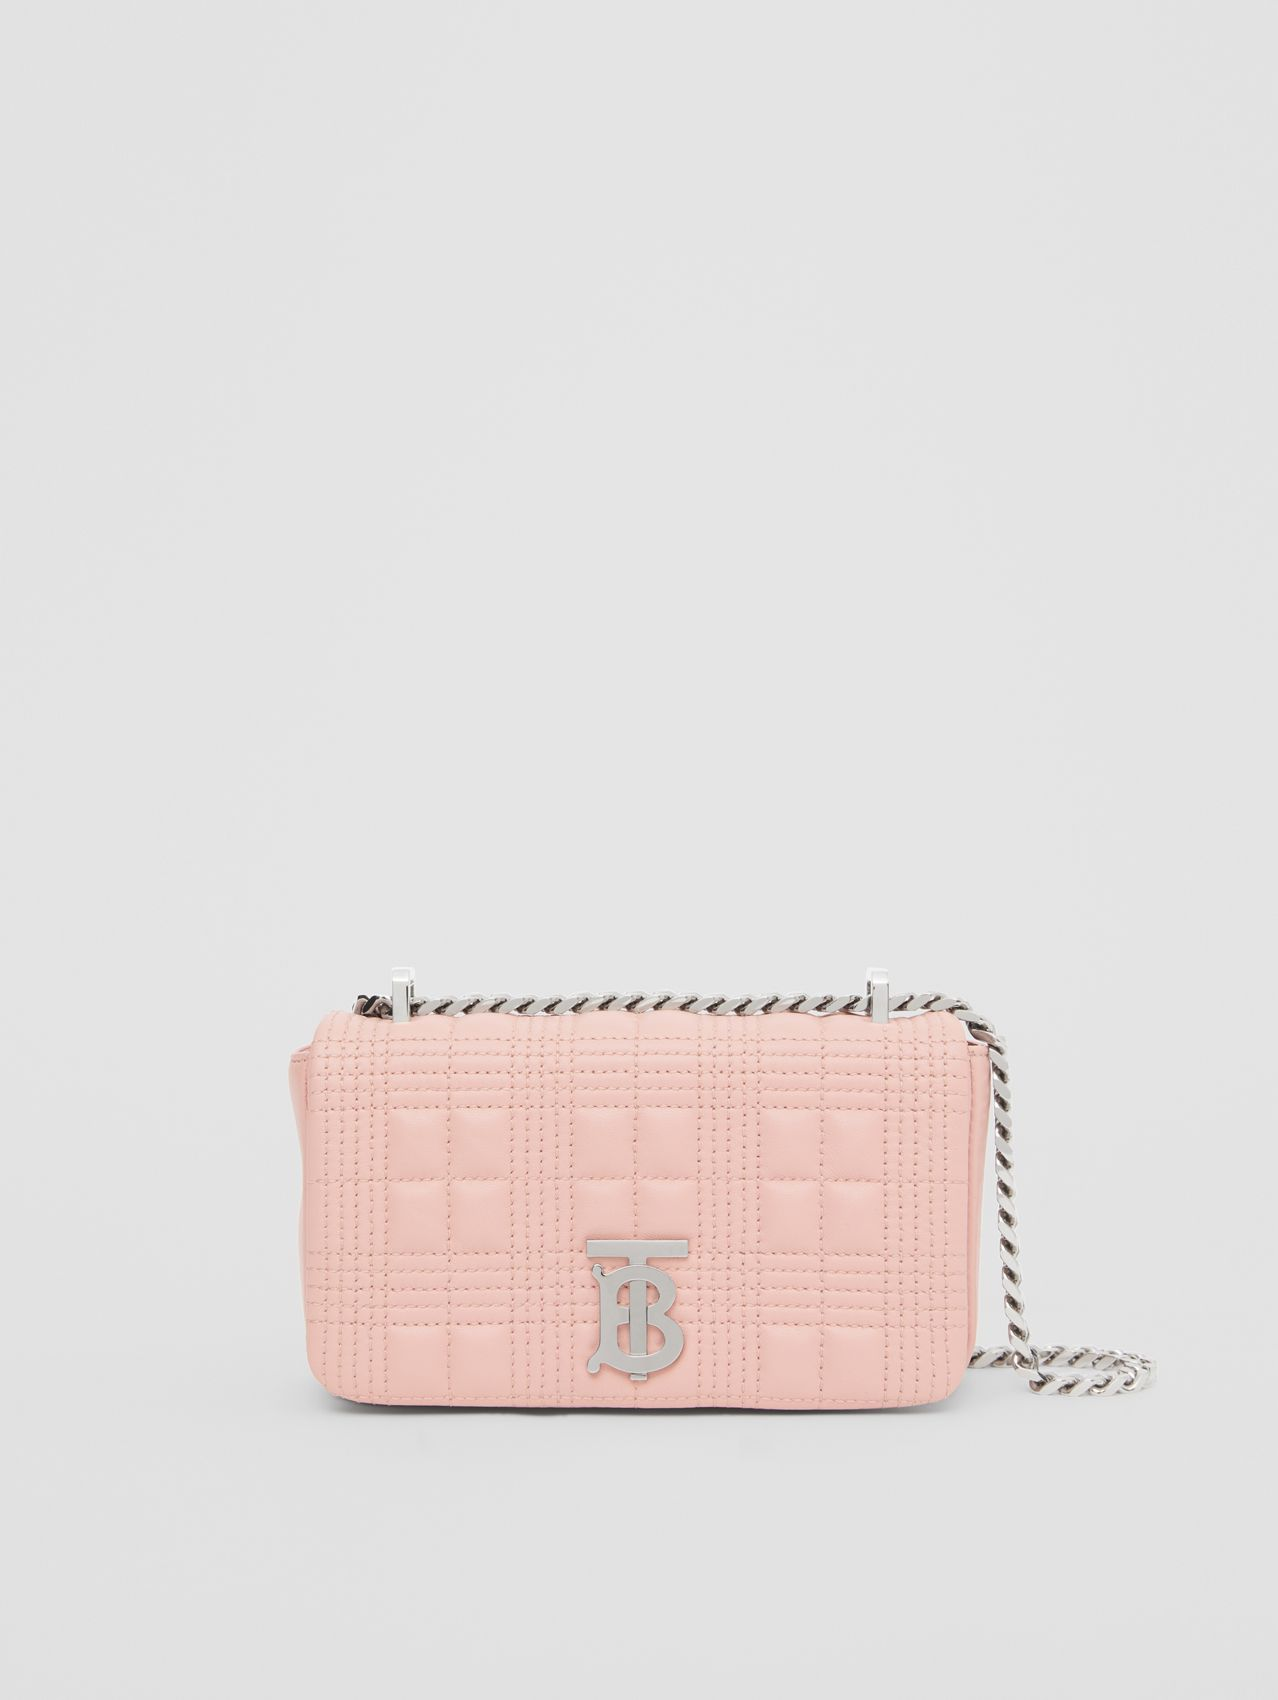 Mini Quilted Lambskin Lola Bag in Blush Pink